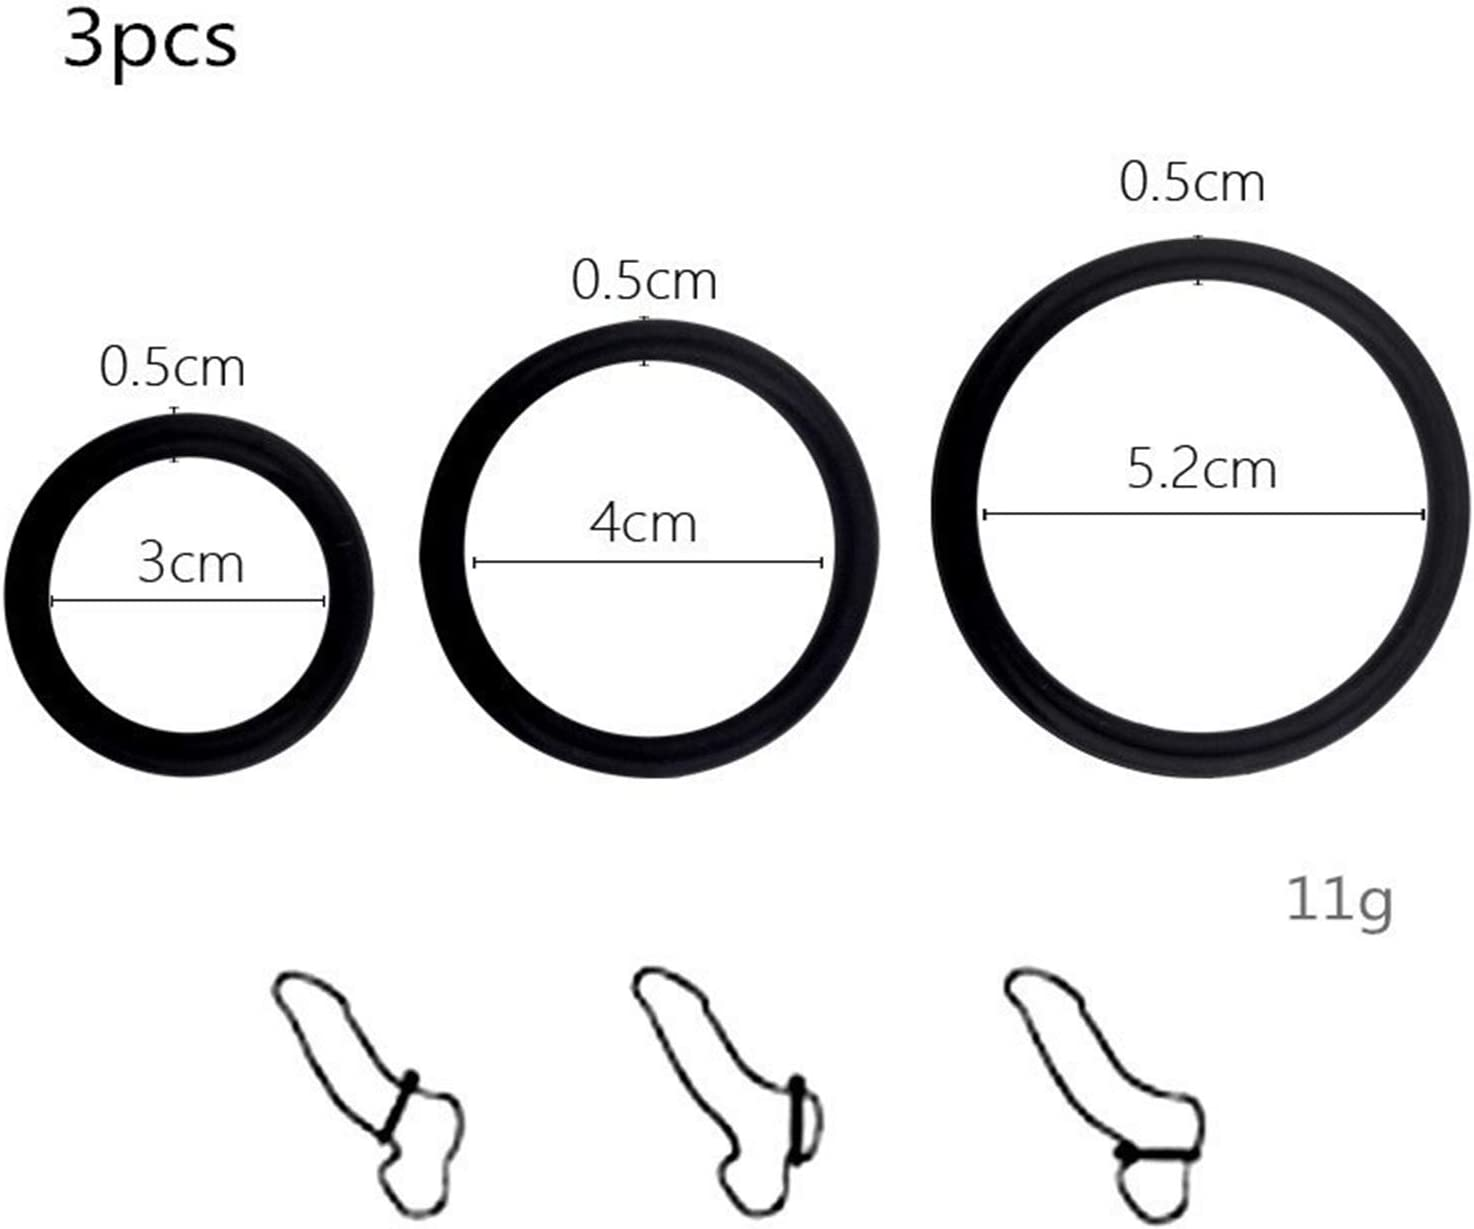 Mens Black Silicone Delay Resistance Exercise Ring 3 Size